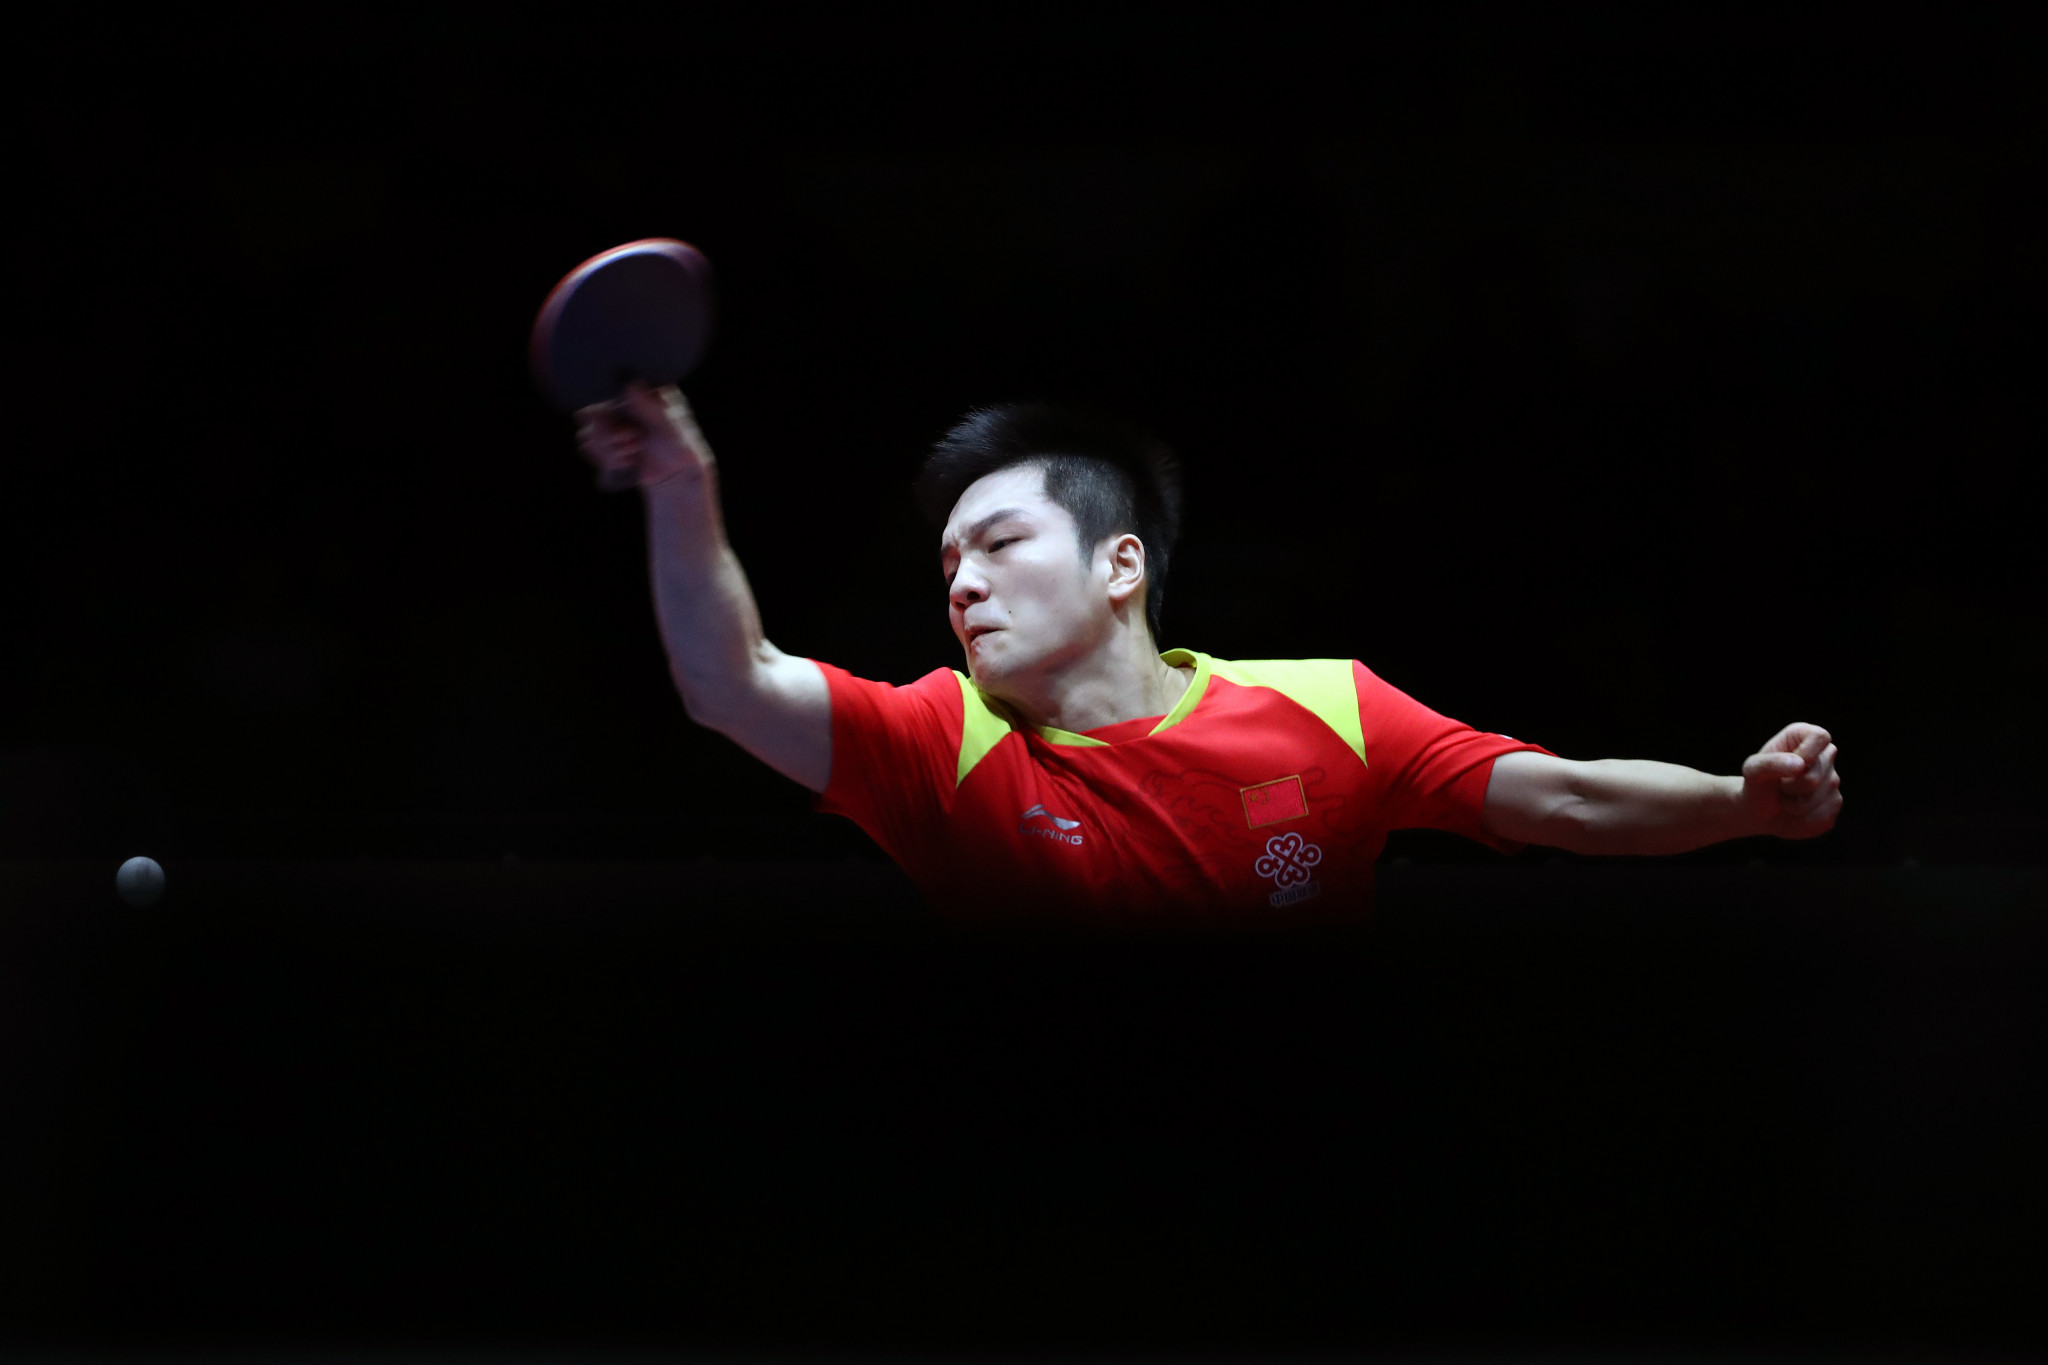 Defending champions untroubled on opening day at ITTF-ATTU Asian Cup as Hirano forced into playoffs